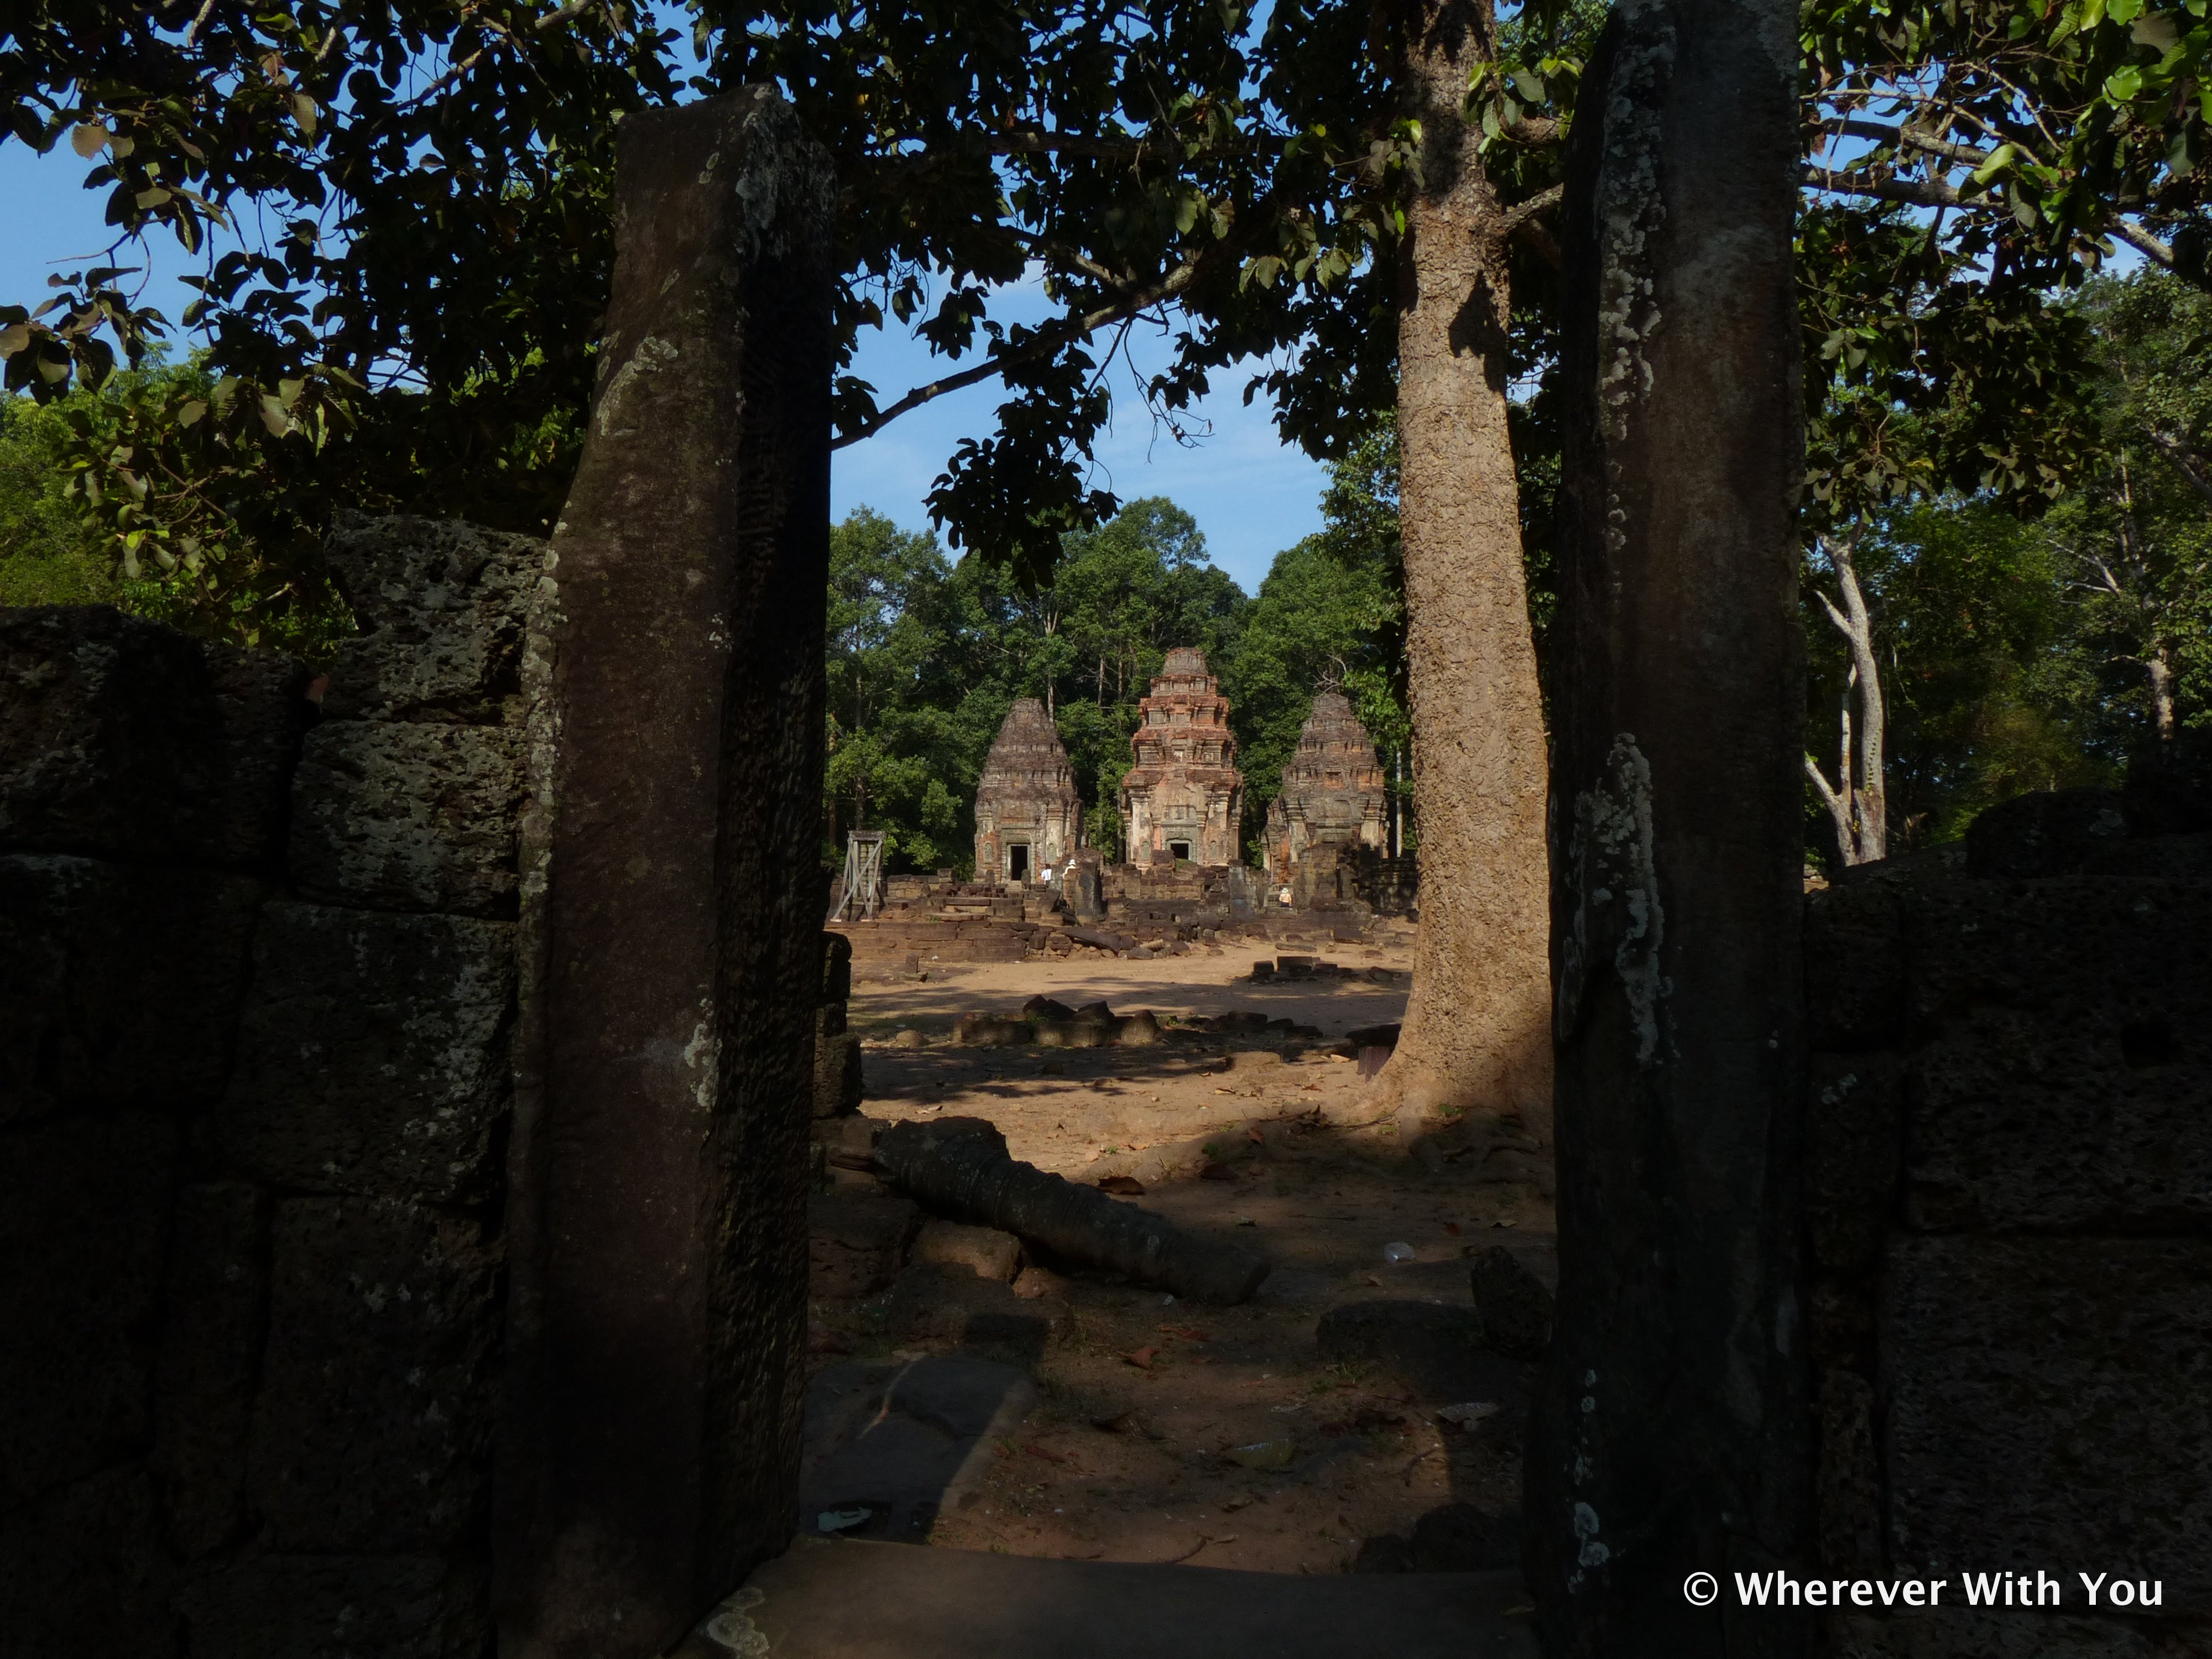 View of the towers at Preah Ko from the road.